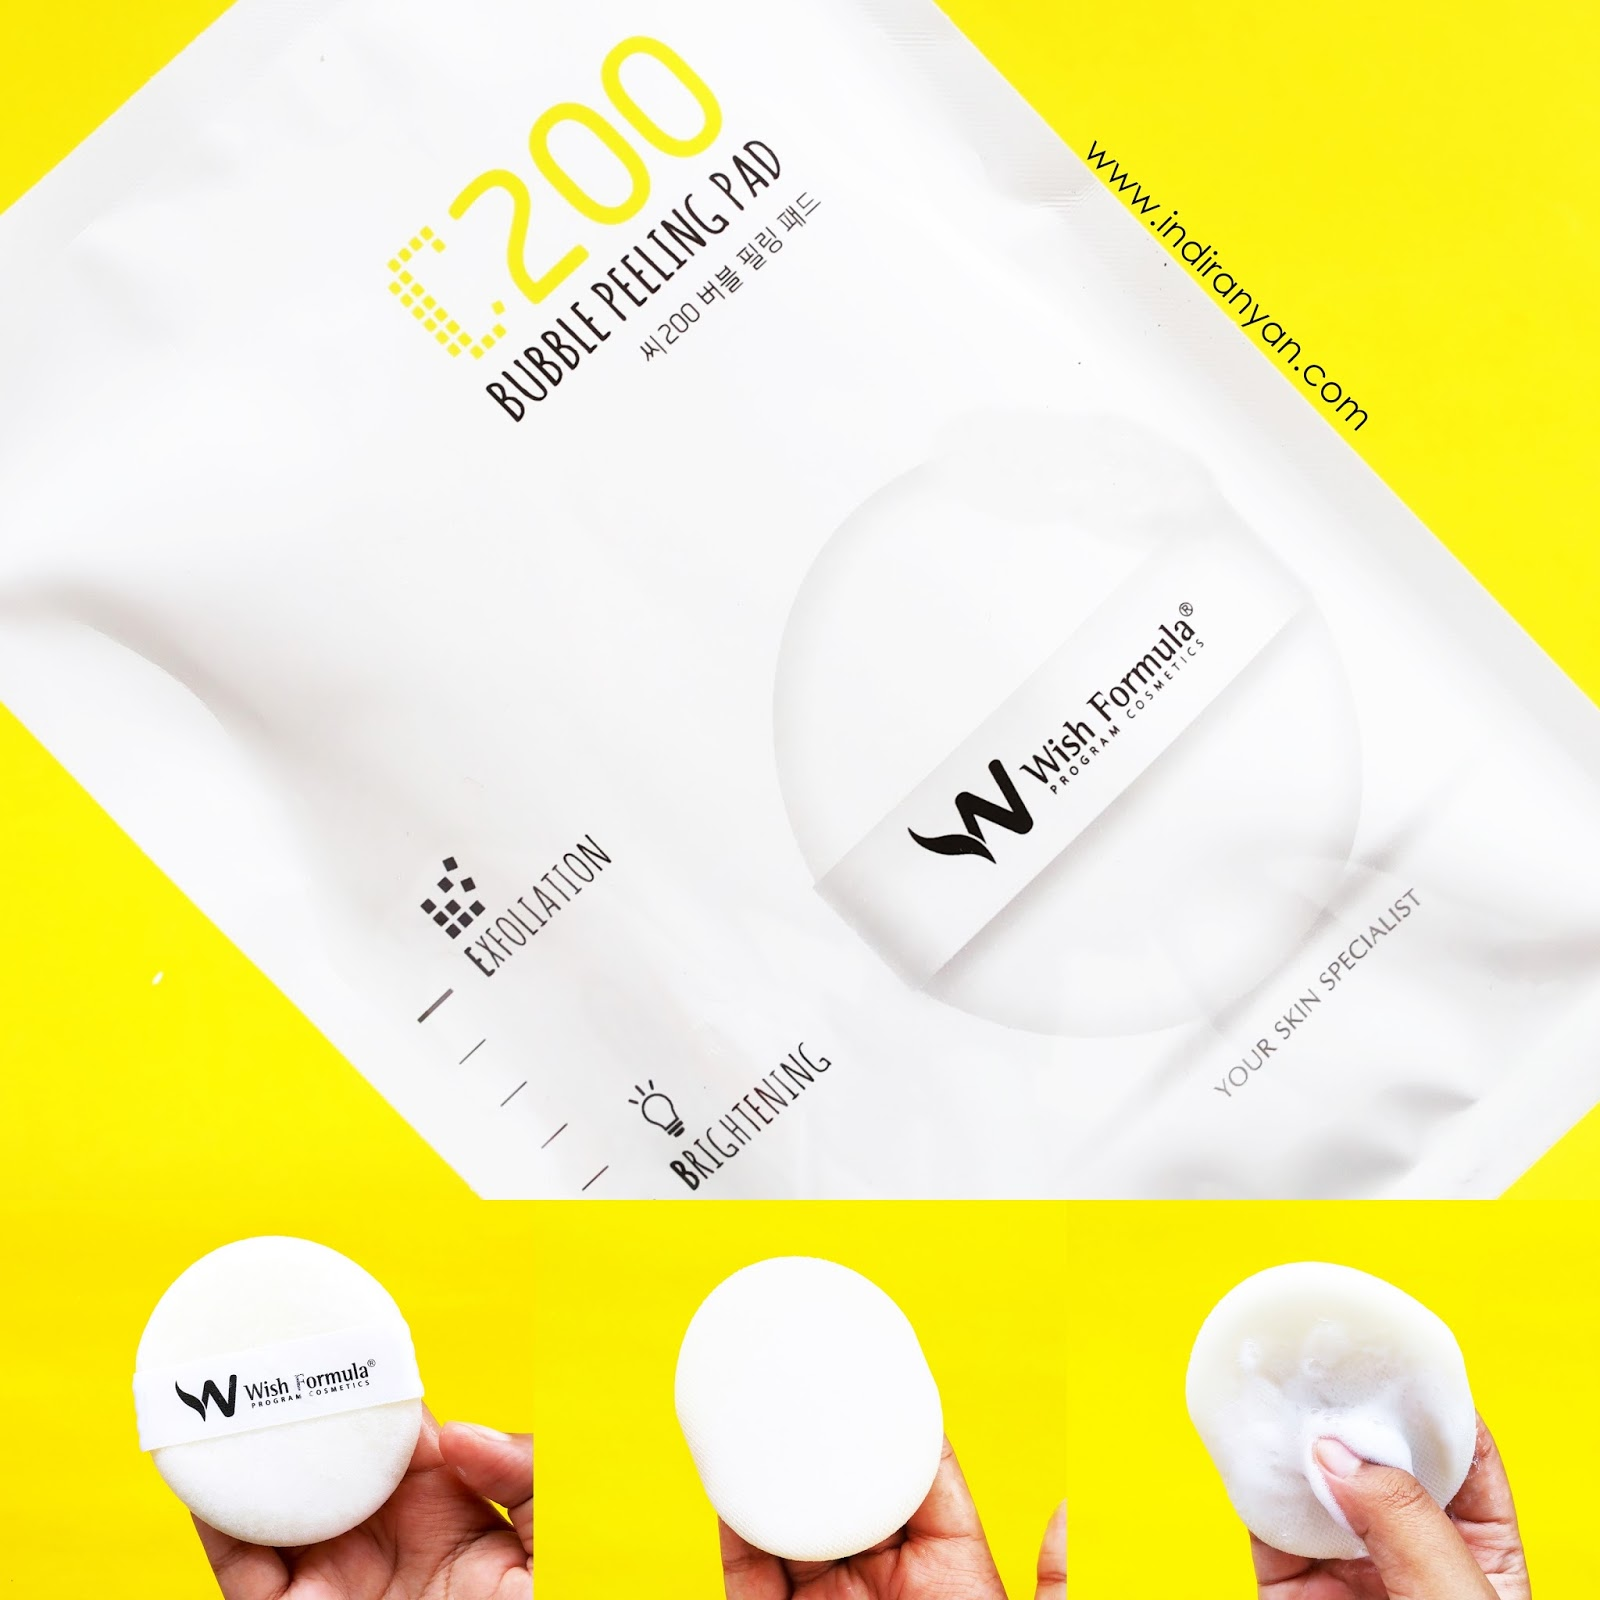 wish-formula-c200-bubble-peeling-pad, review-wish-formula-c200-bubble-peeling-pad